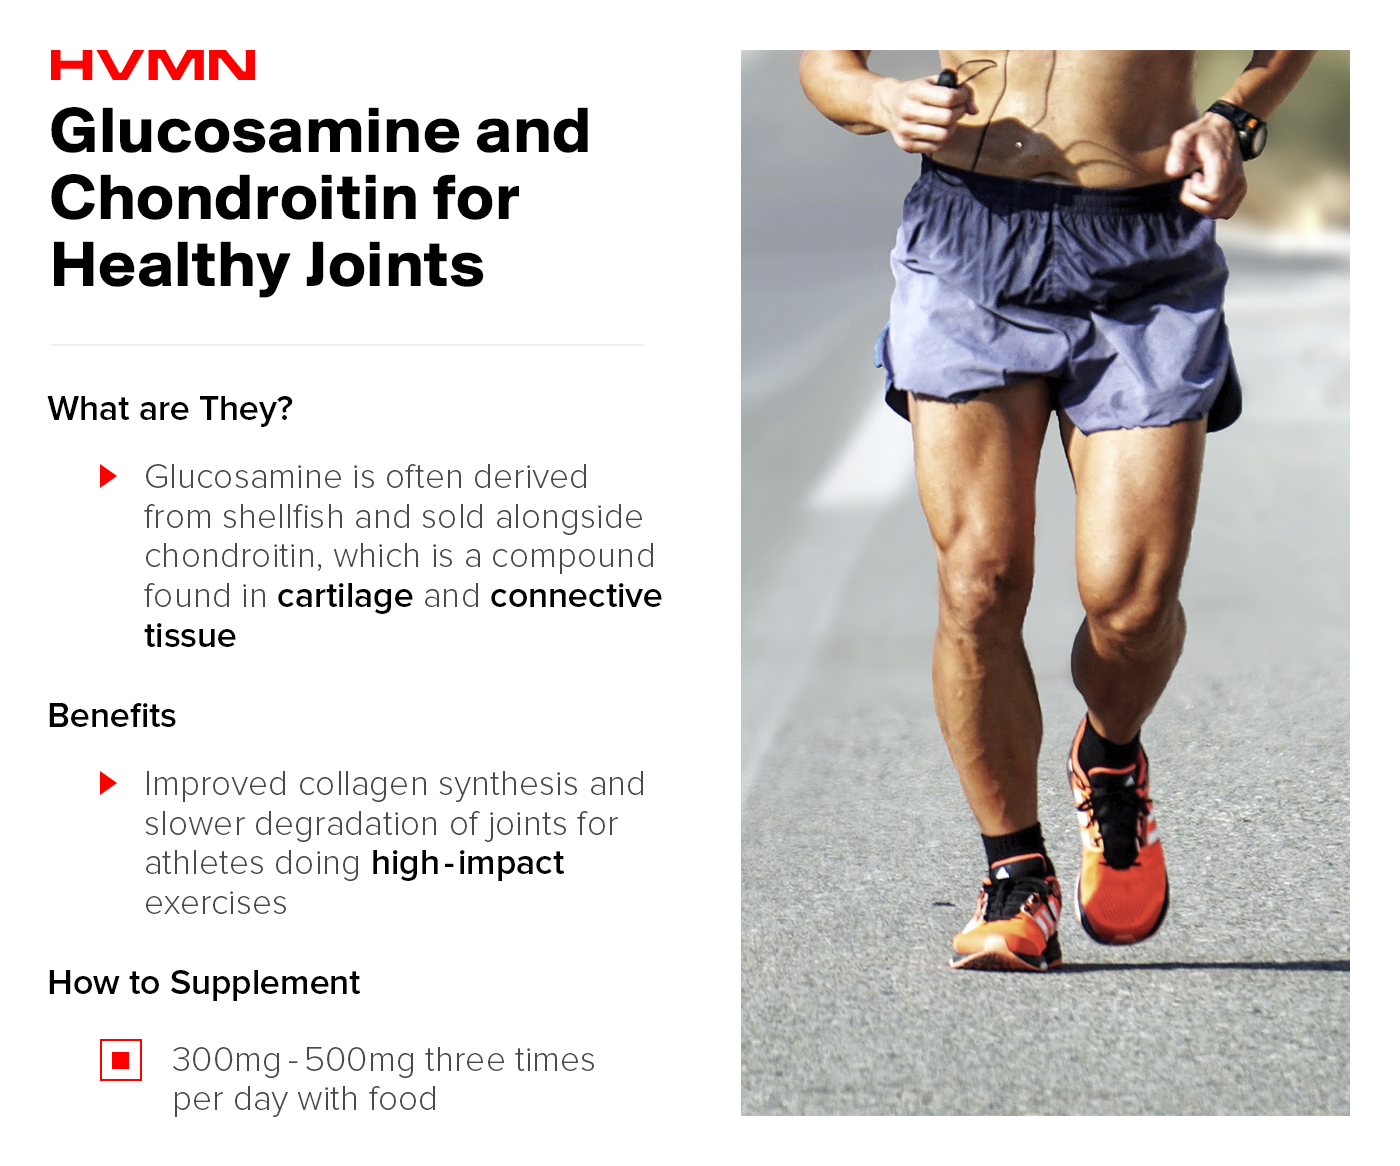 A man running on pavement shirtless showing the benefits of glucosamine and chondroitin for healthy joints